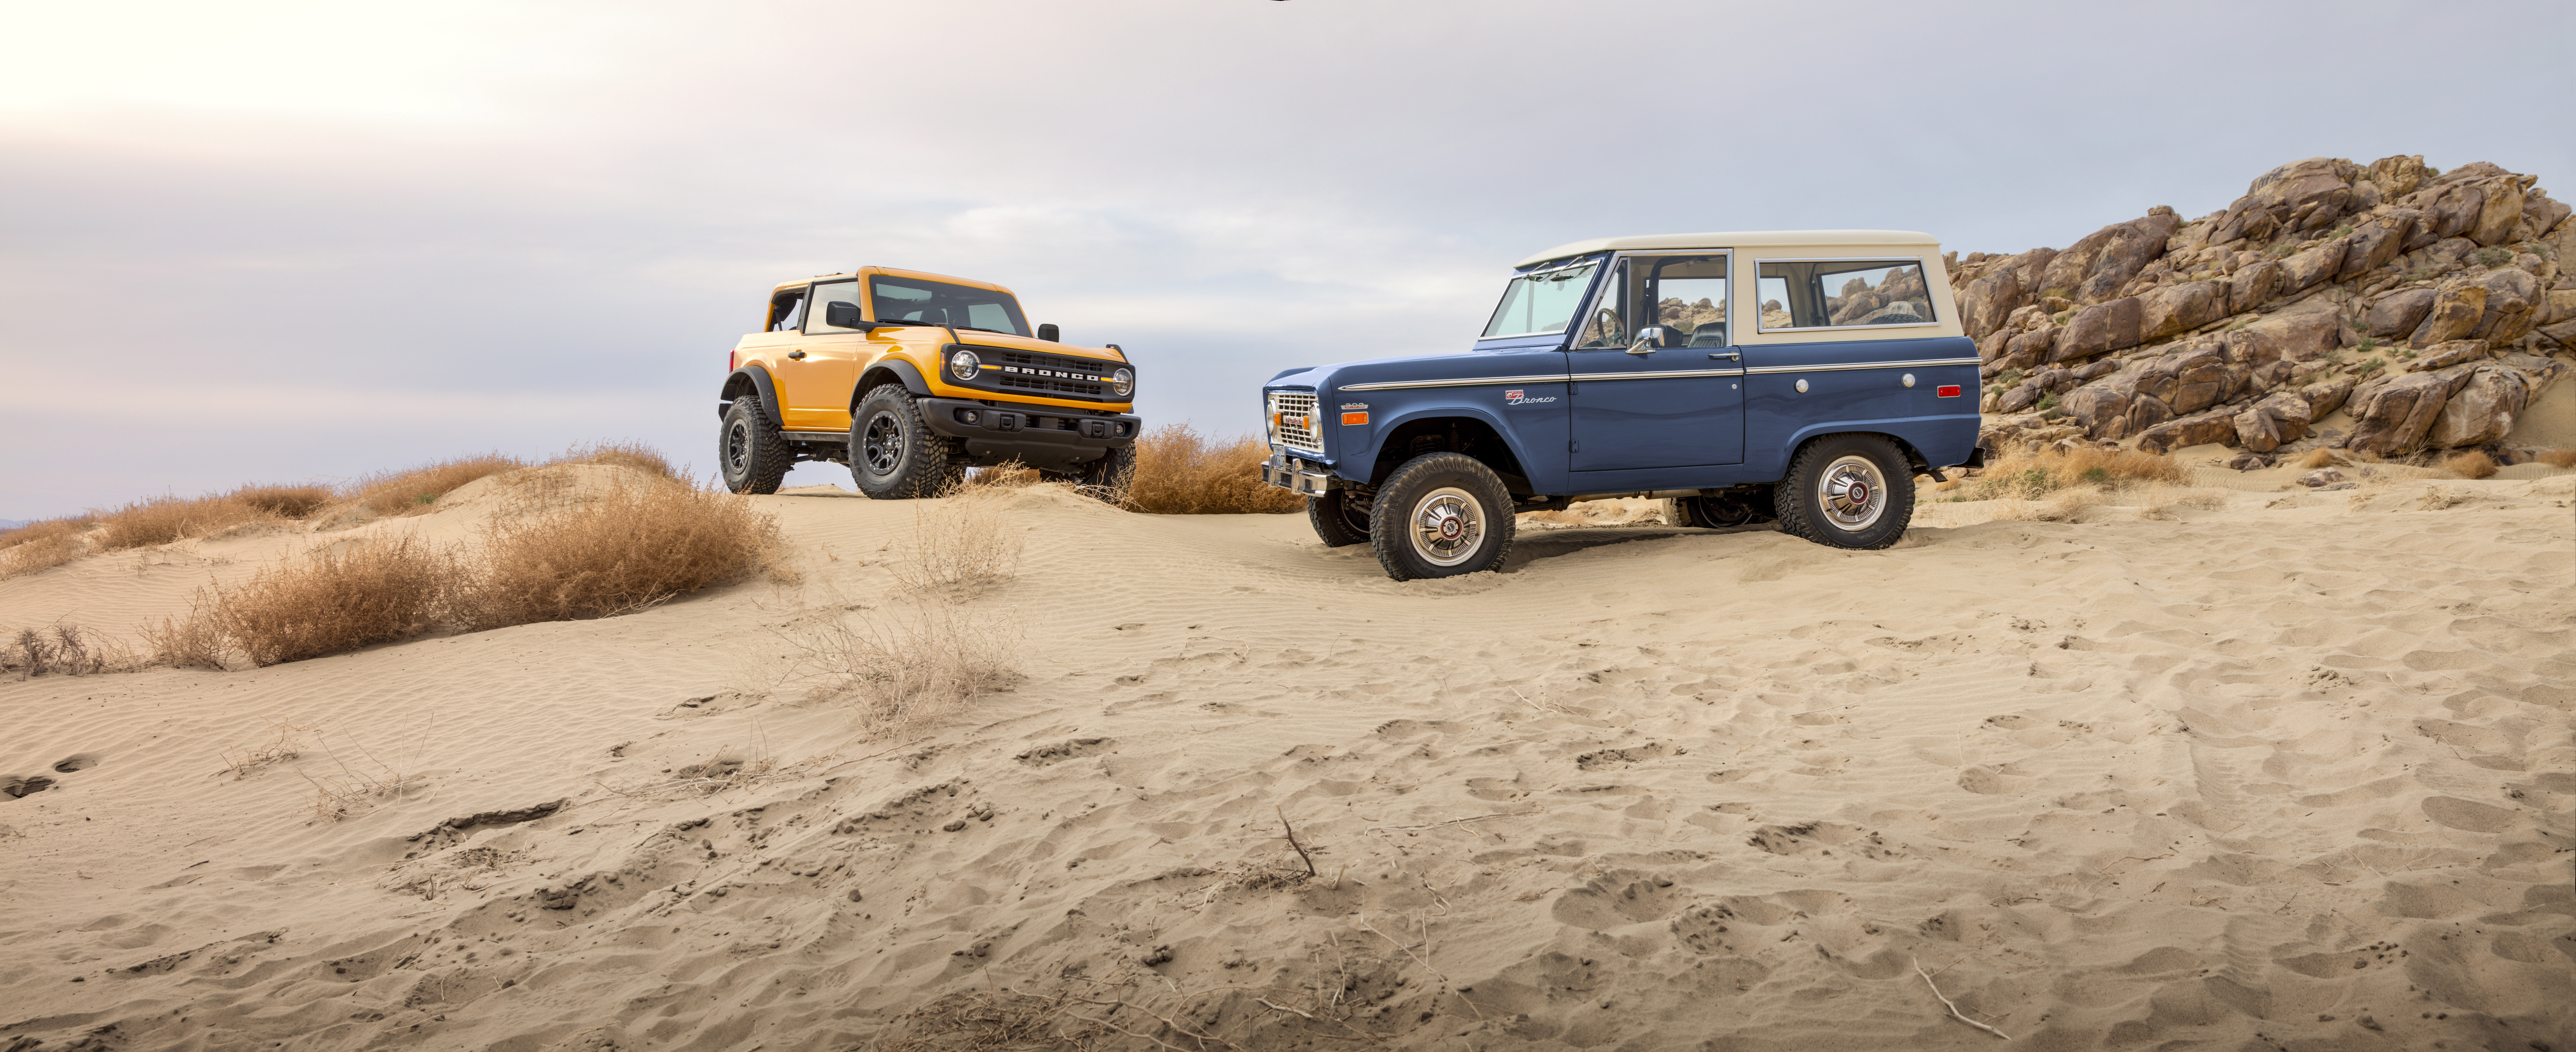 Sixth-generation Ford Bronco debuts – two EcoBoost petrols, removable panels and washable interior Image #1145172